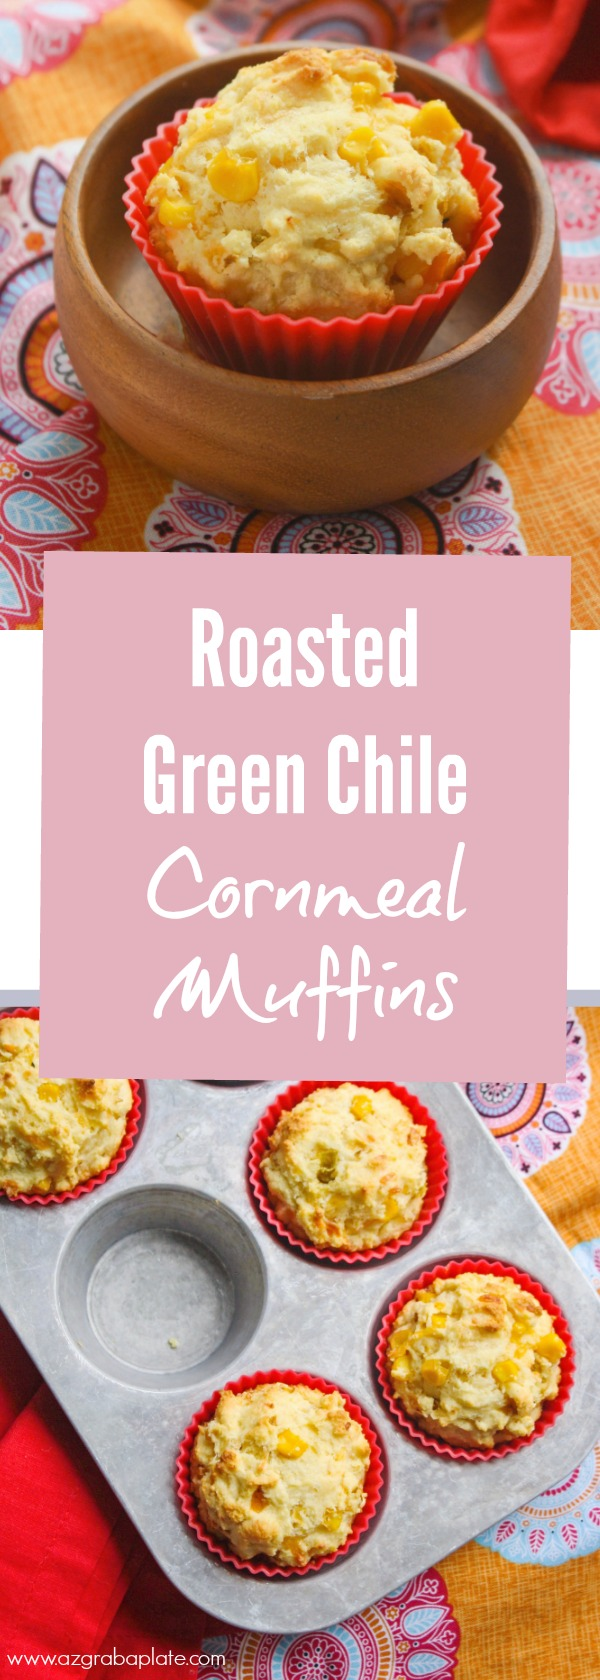 Roasted Green Chile Cornbread Muffins are a real treat to serve on the side of so many meals. They're tasty with chicken, chili, salad, and more!